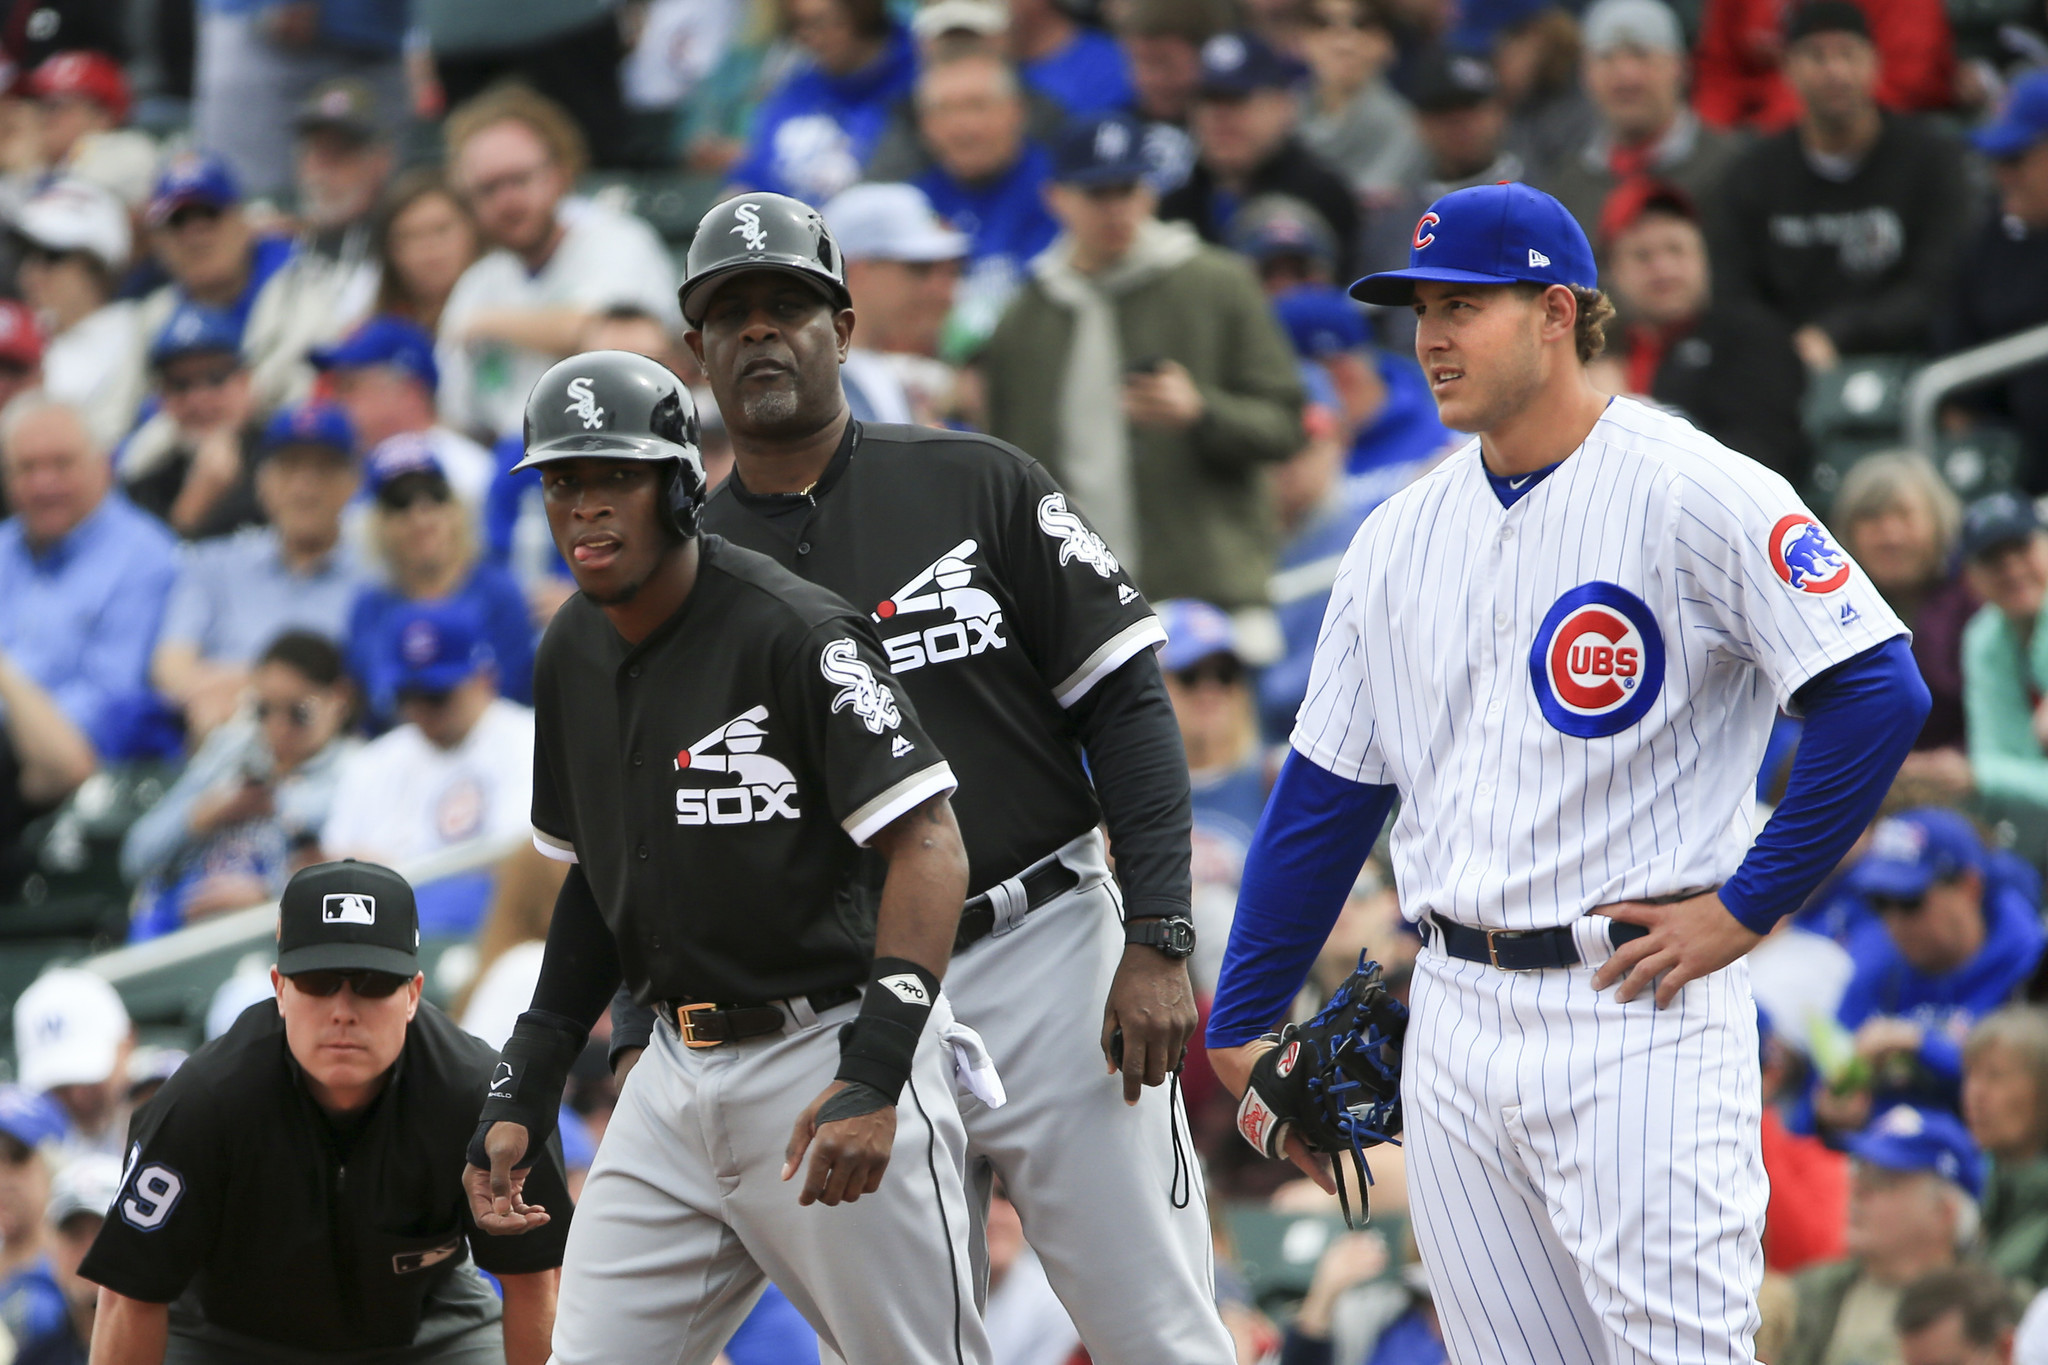 Ct-facebook-cubs-white-sox-20170724